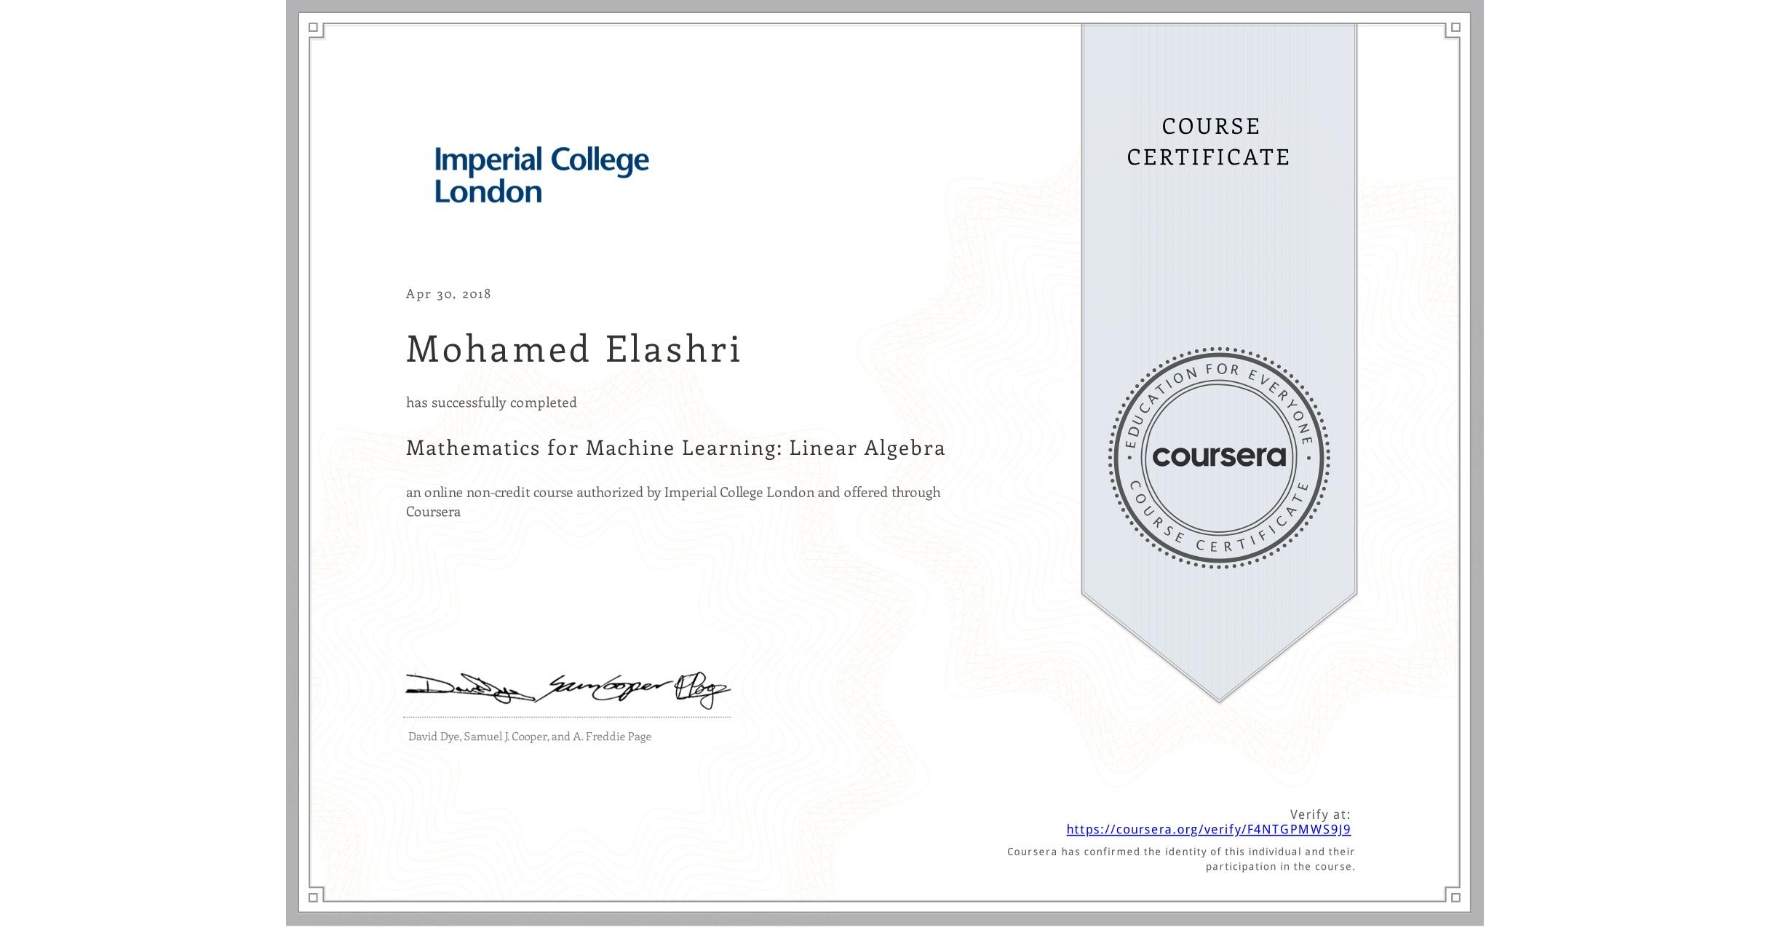 View certificate for Mohamed Elashri, Mathematics for Machine Learning: Linear Algebra, an online non-credit course authorized by Imperial College London and offered through Coursera